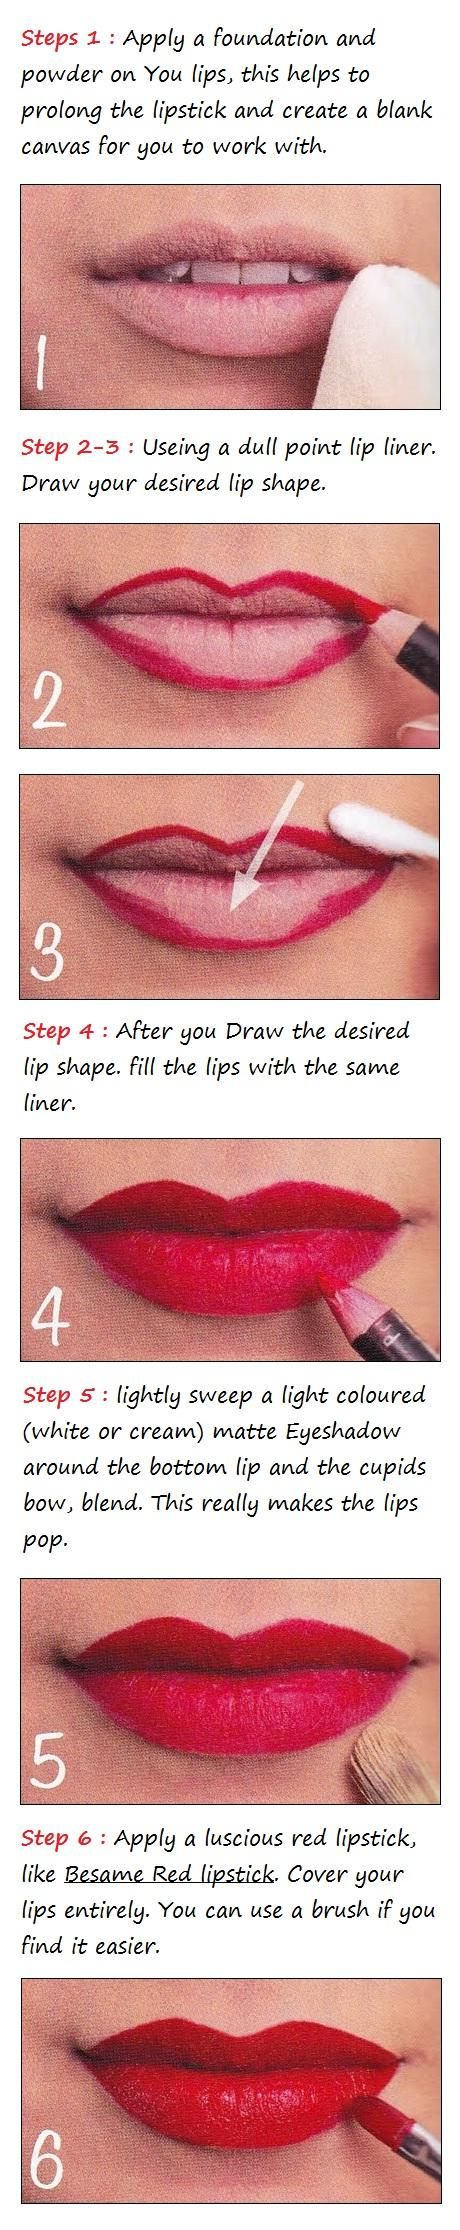 the perfect way to apply red lipstick